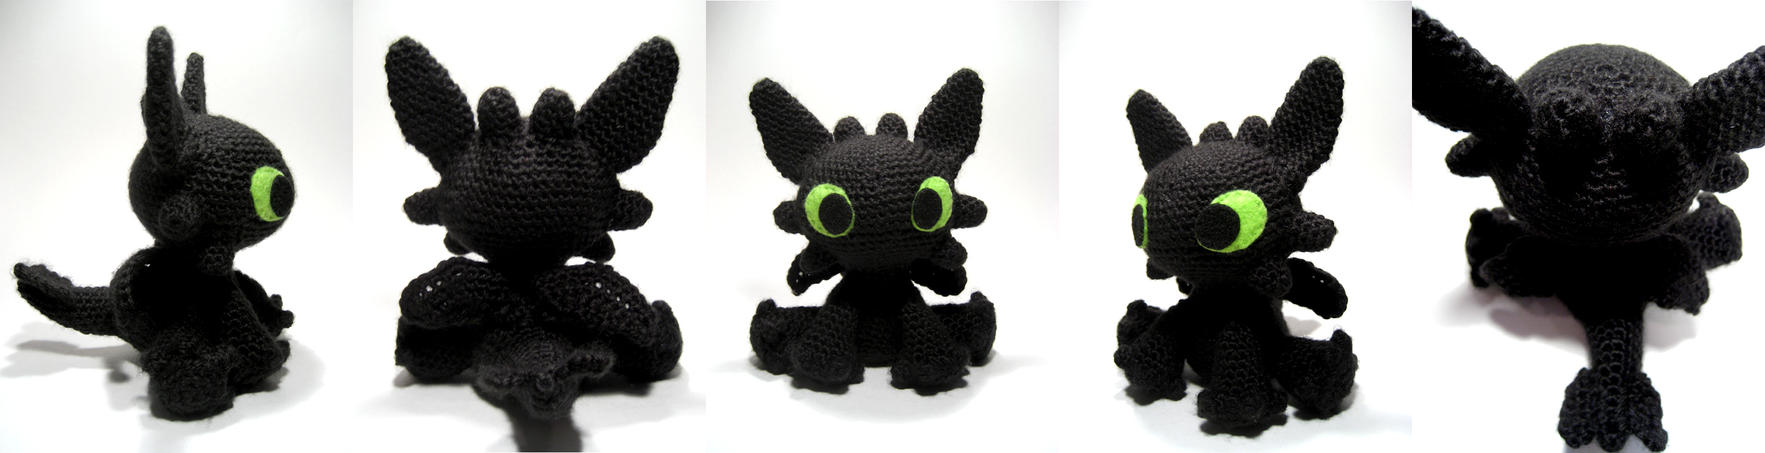 Knitting Pattern Toothless Dragon : Toothless Dragon Crochet Pattern Free